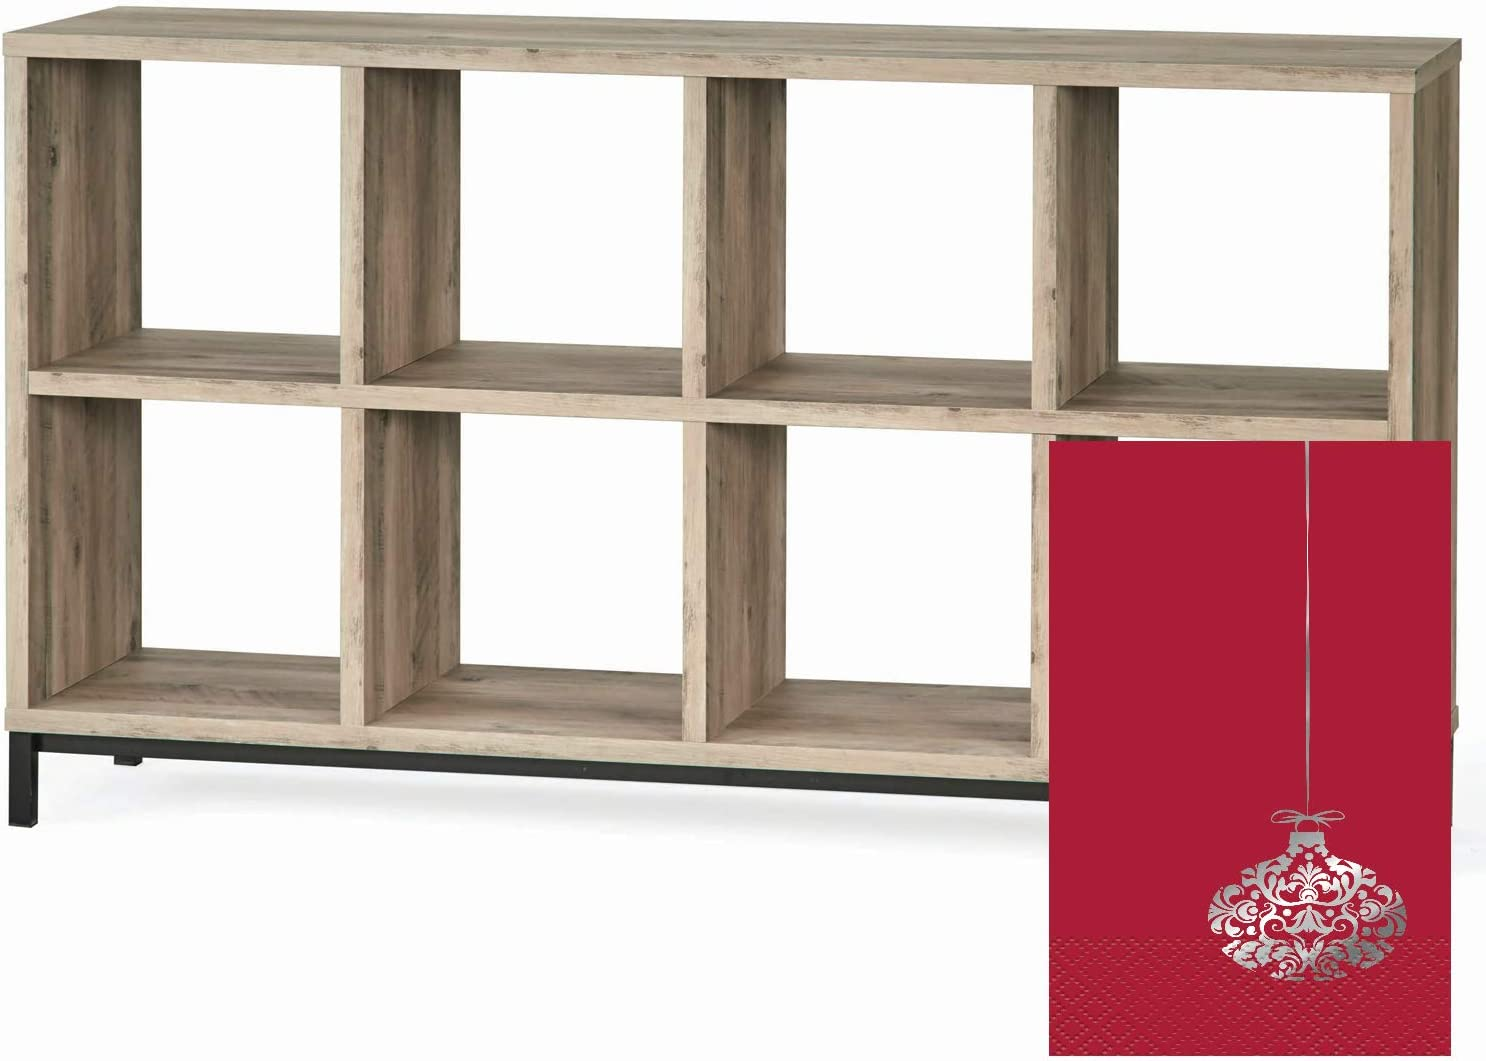 Black, 8-Cube Better Homes and Gardens 8-Cube Organizer with Holiday Tree Bundle